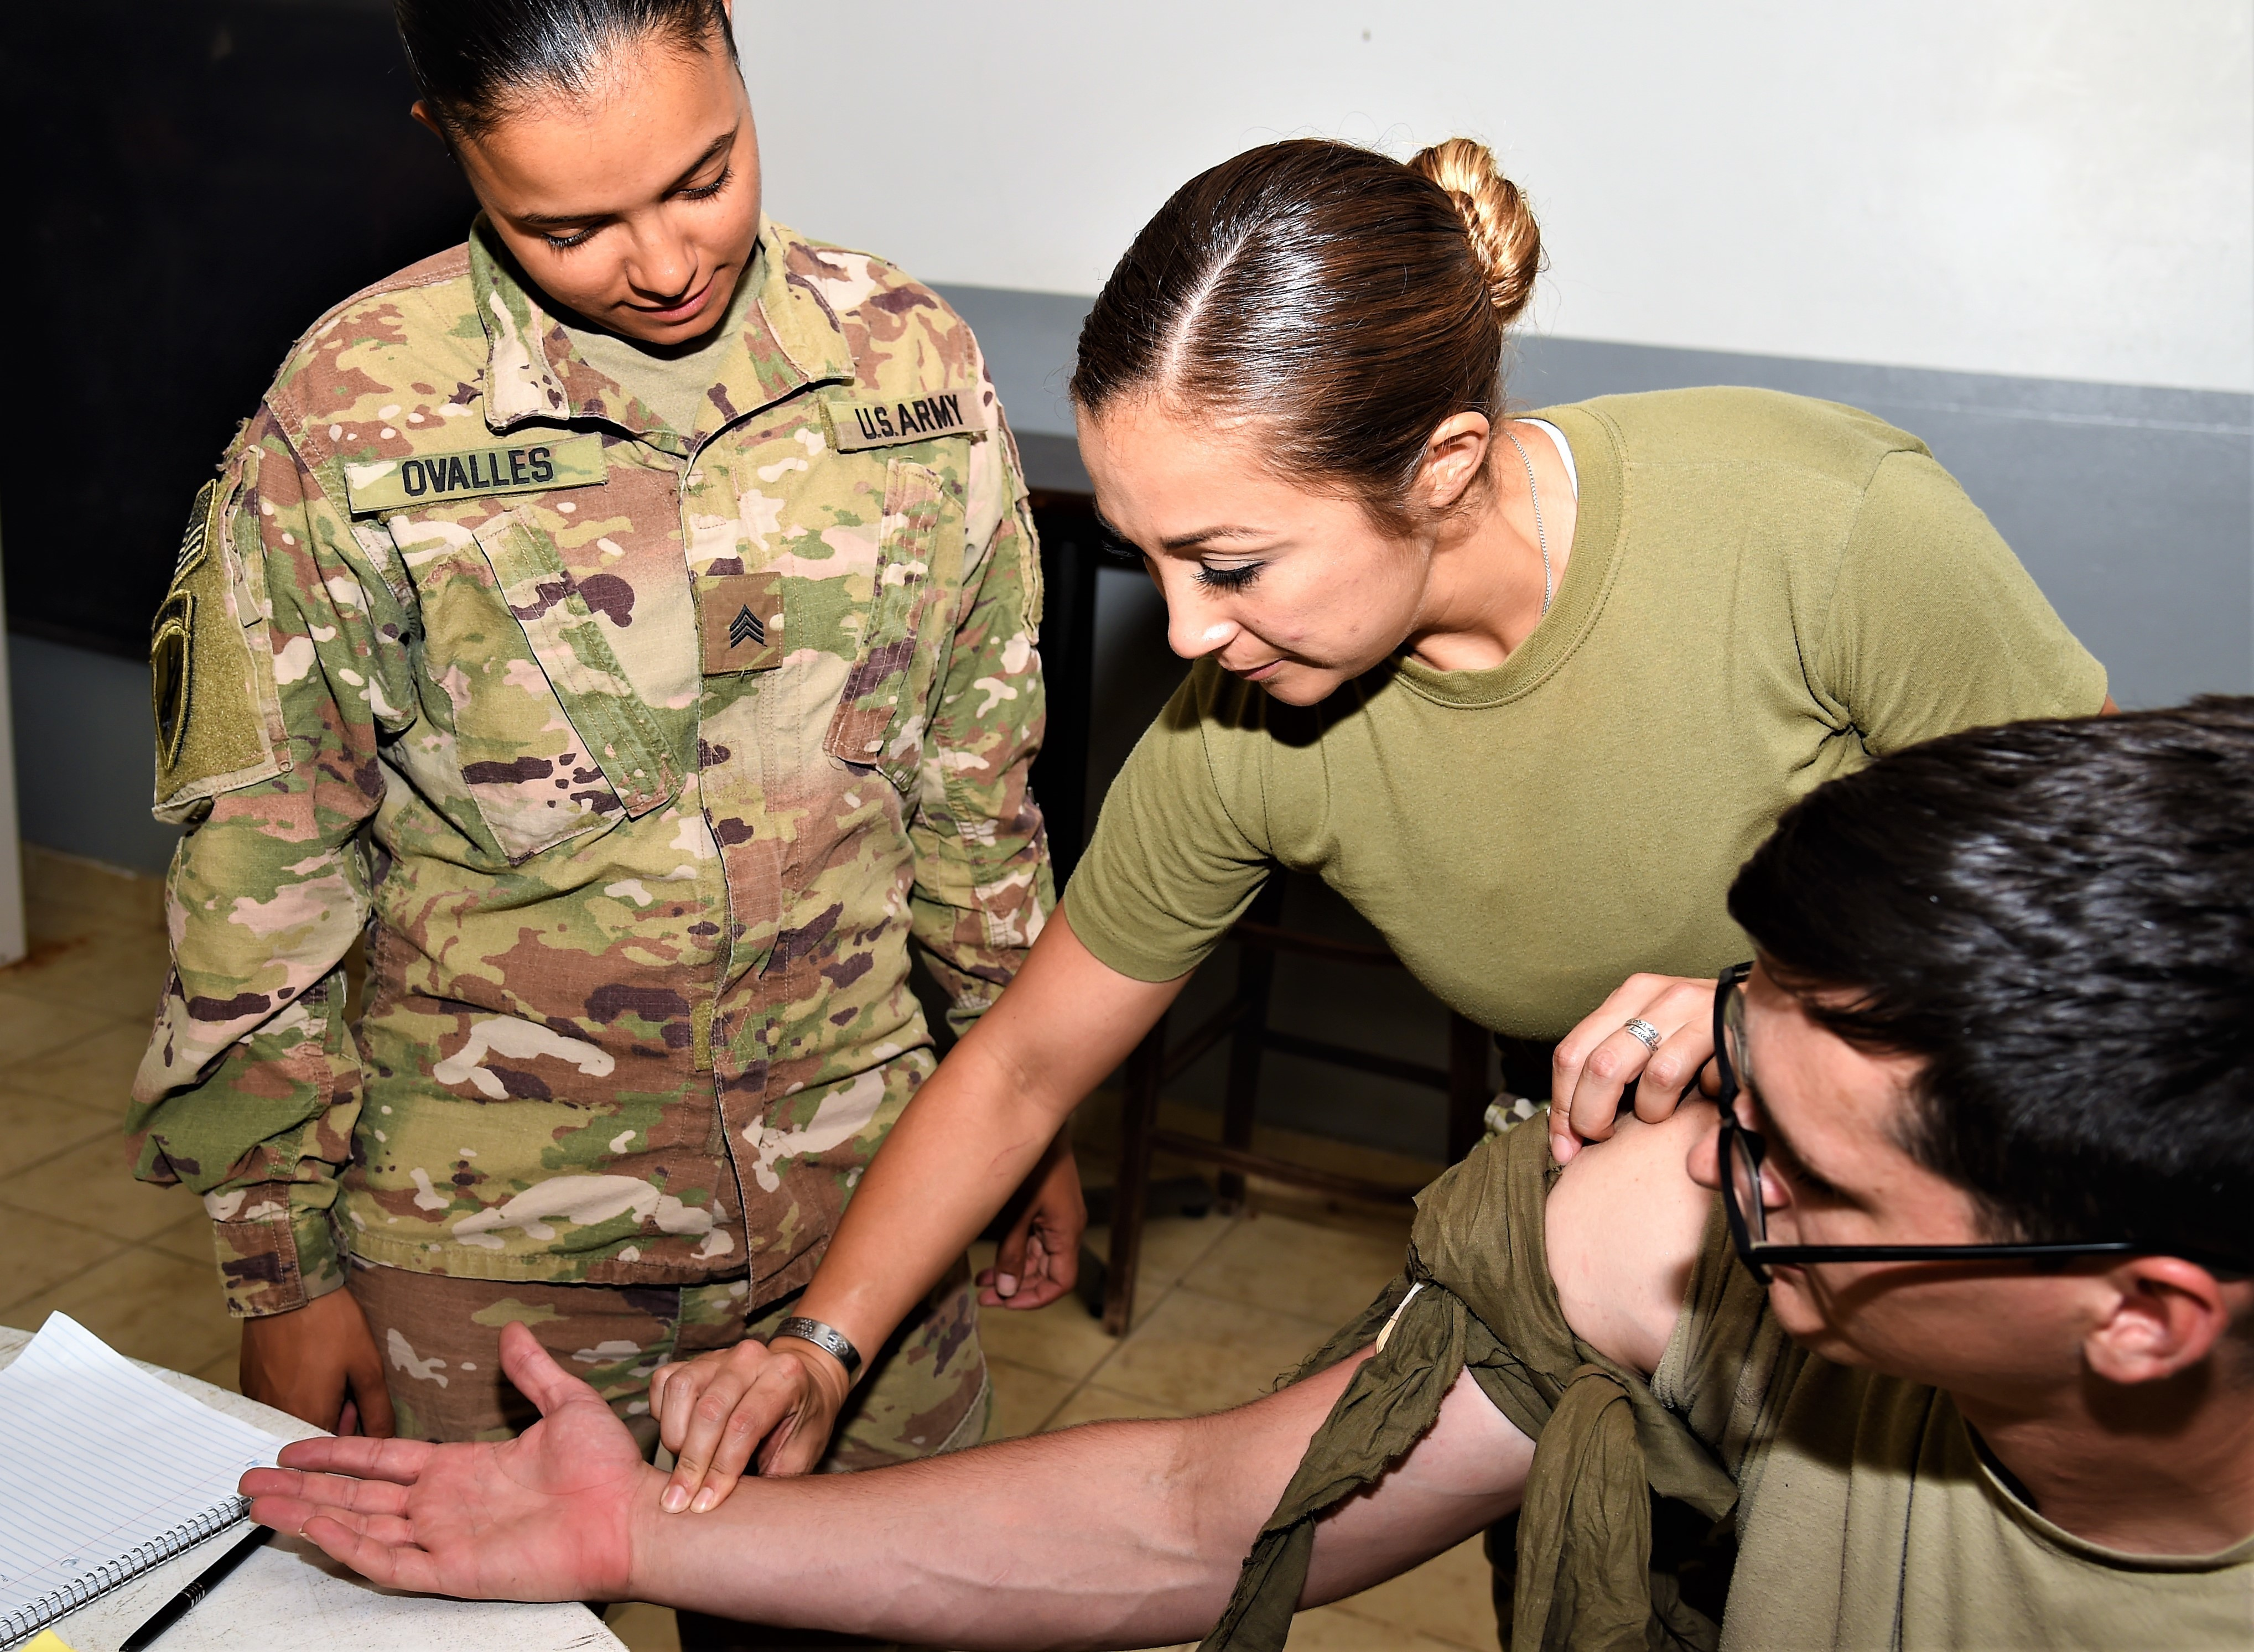 U.S. Army Staff Sgt, Crystal Velasquez, Combined Joint Task Force-Horn of Africa senior enlisted medical advisor and course instructor, instructs U.S. Army Sgt. Marina Ovalles, CJTF-HOA supply sergeant, and U.S. Air Force Staff Sgt. Christopher Faucette, Combined Joint Task Force-Horn of Africa transportation motor pool, on applying a combat application tourniquet during combat lifesaver course held on Camp Lemonnier, Djibouti, Sept. 11, 2017. The U.S. Army Combat Lifesaver Course is intended to bridge first aid training – self and buddy care — and the medical training given to combat medics. (U.S. Air National Guard photo by Tech. Sgt. Andria Allmond)